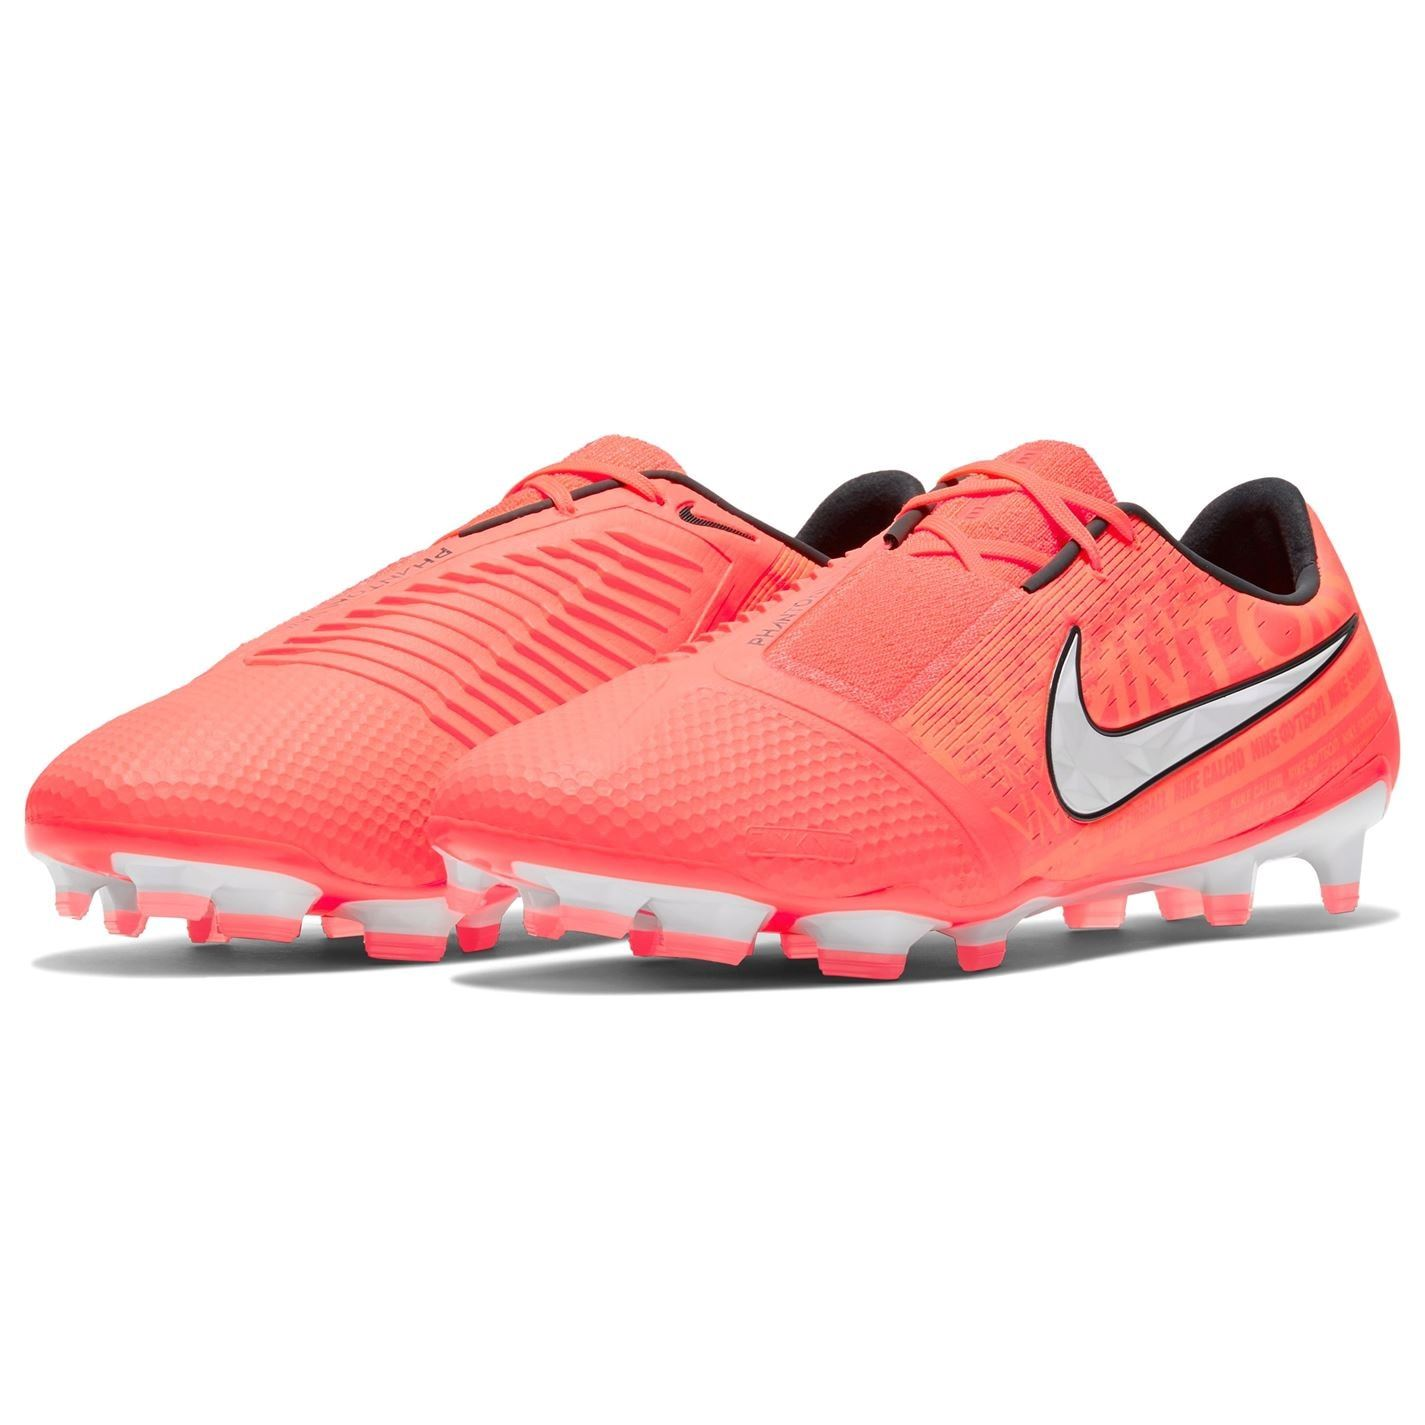 Nike-Phantom-Venom-Elite-Homme-FG-Firm-Ground-Chaussures-De-Football-Chaussures-de-foot-crampons miniature 4